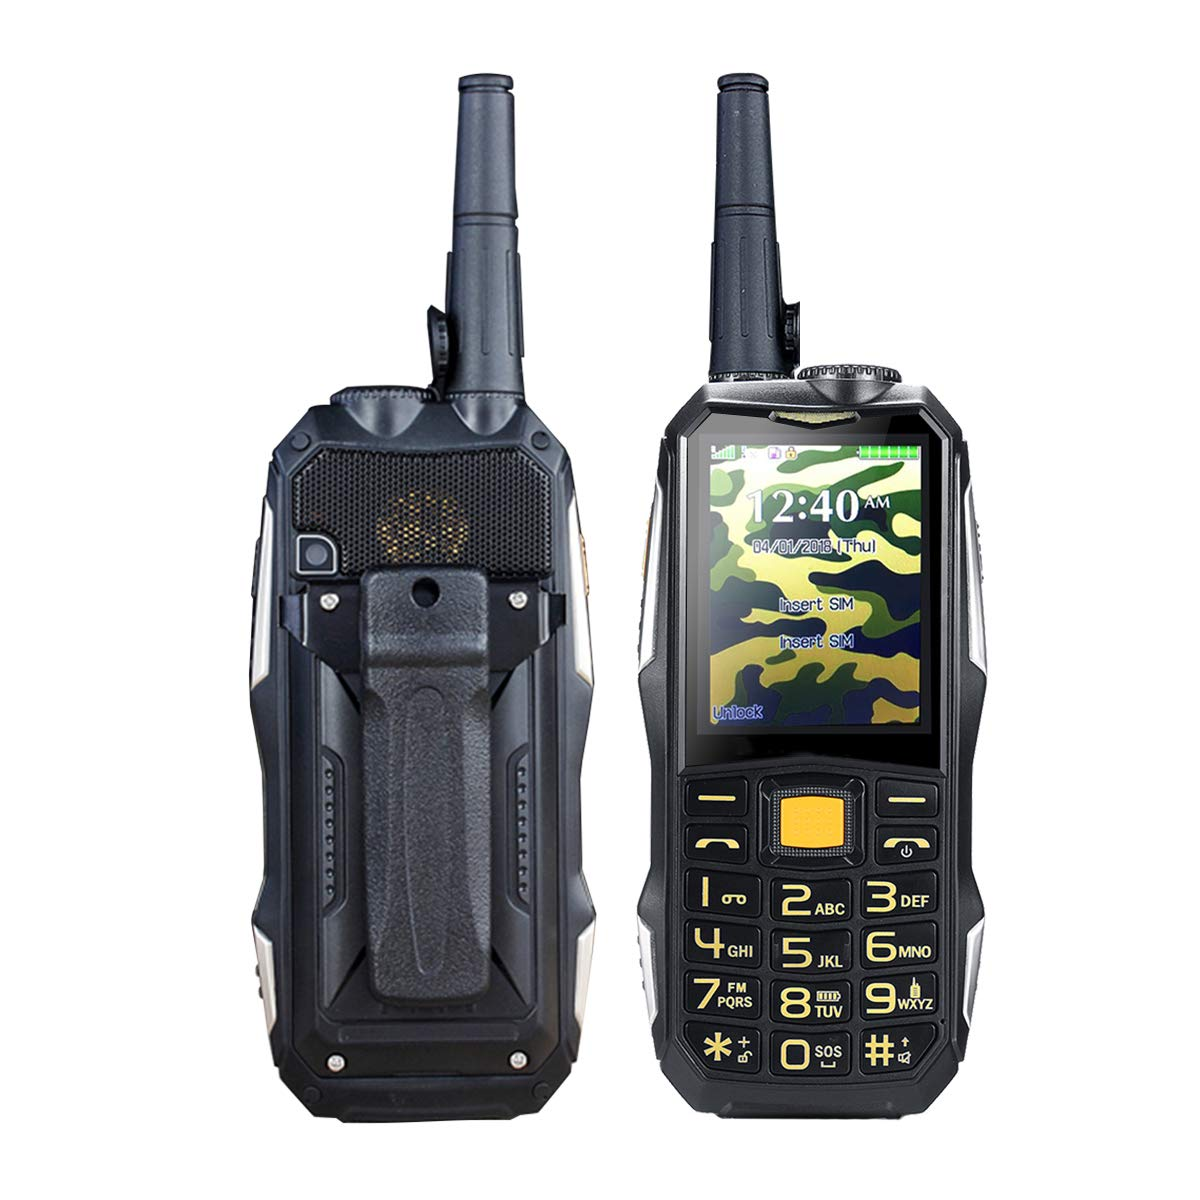 Generic 2.4inch 19800mah Rugged Phone Dual SIM GSM Walkie Talkie ...